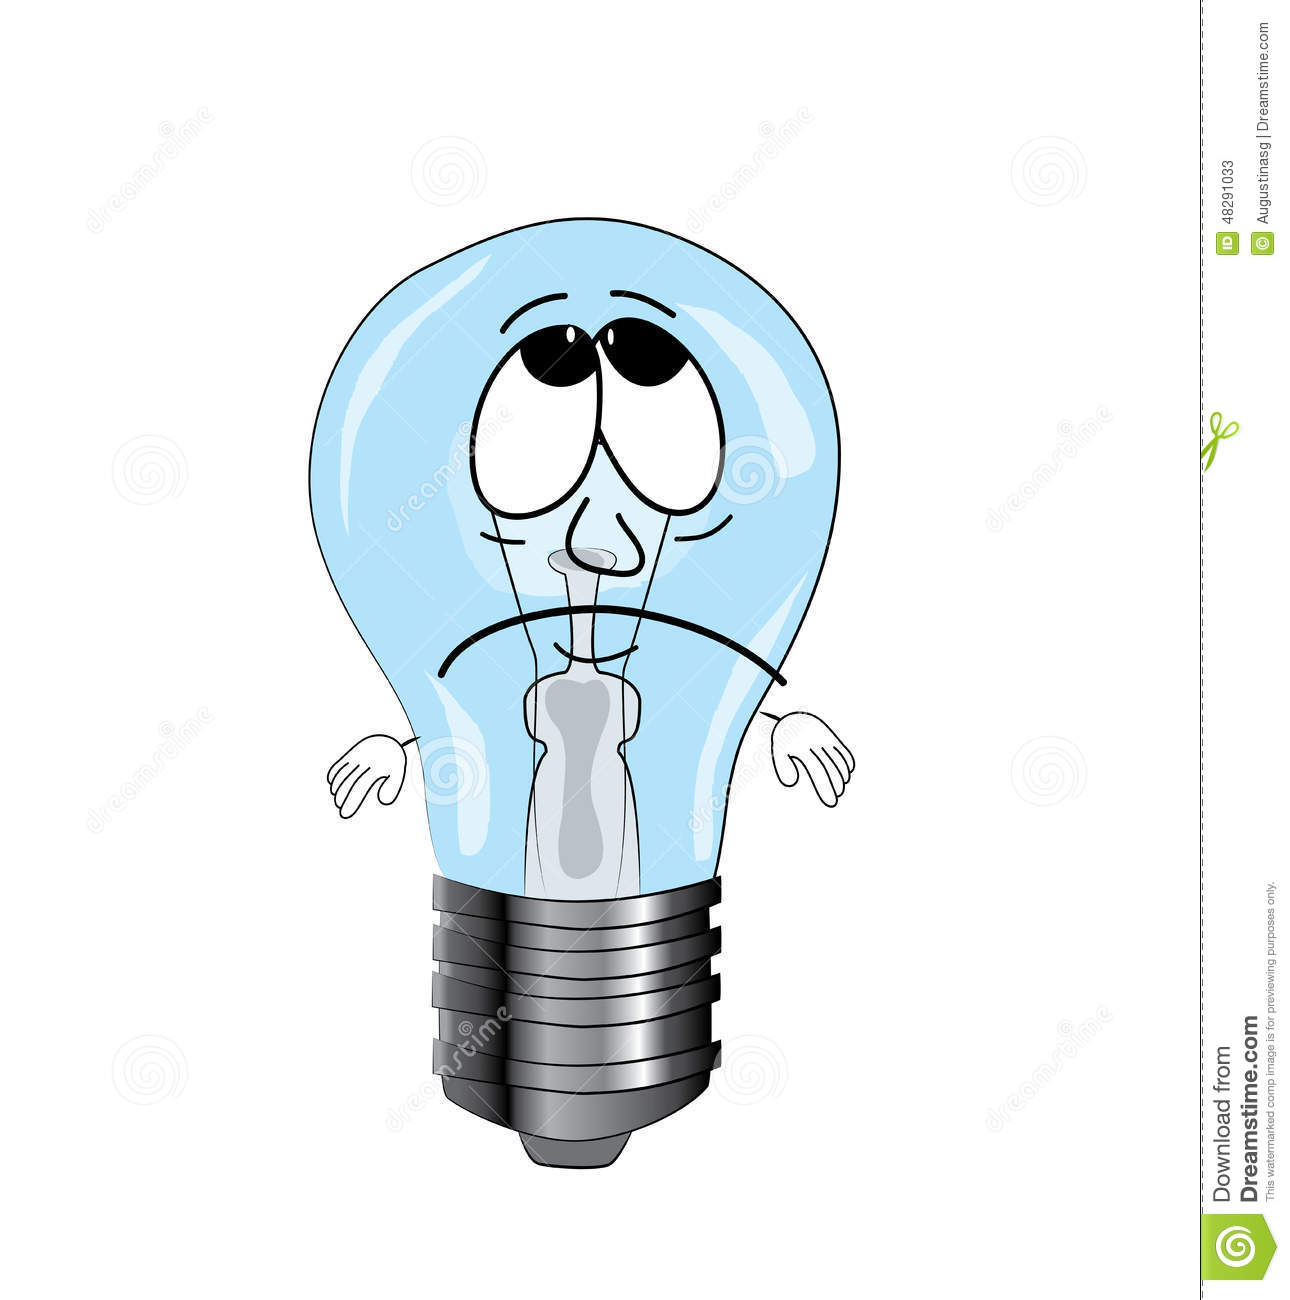 sad light bulb cartoon stock illustration image 48291033. Black Bedroom Furniture Sets. Home Design Ideas